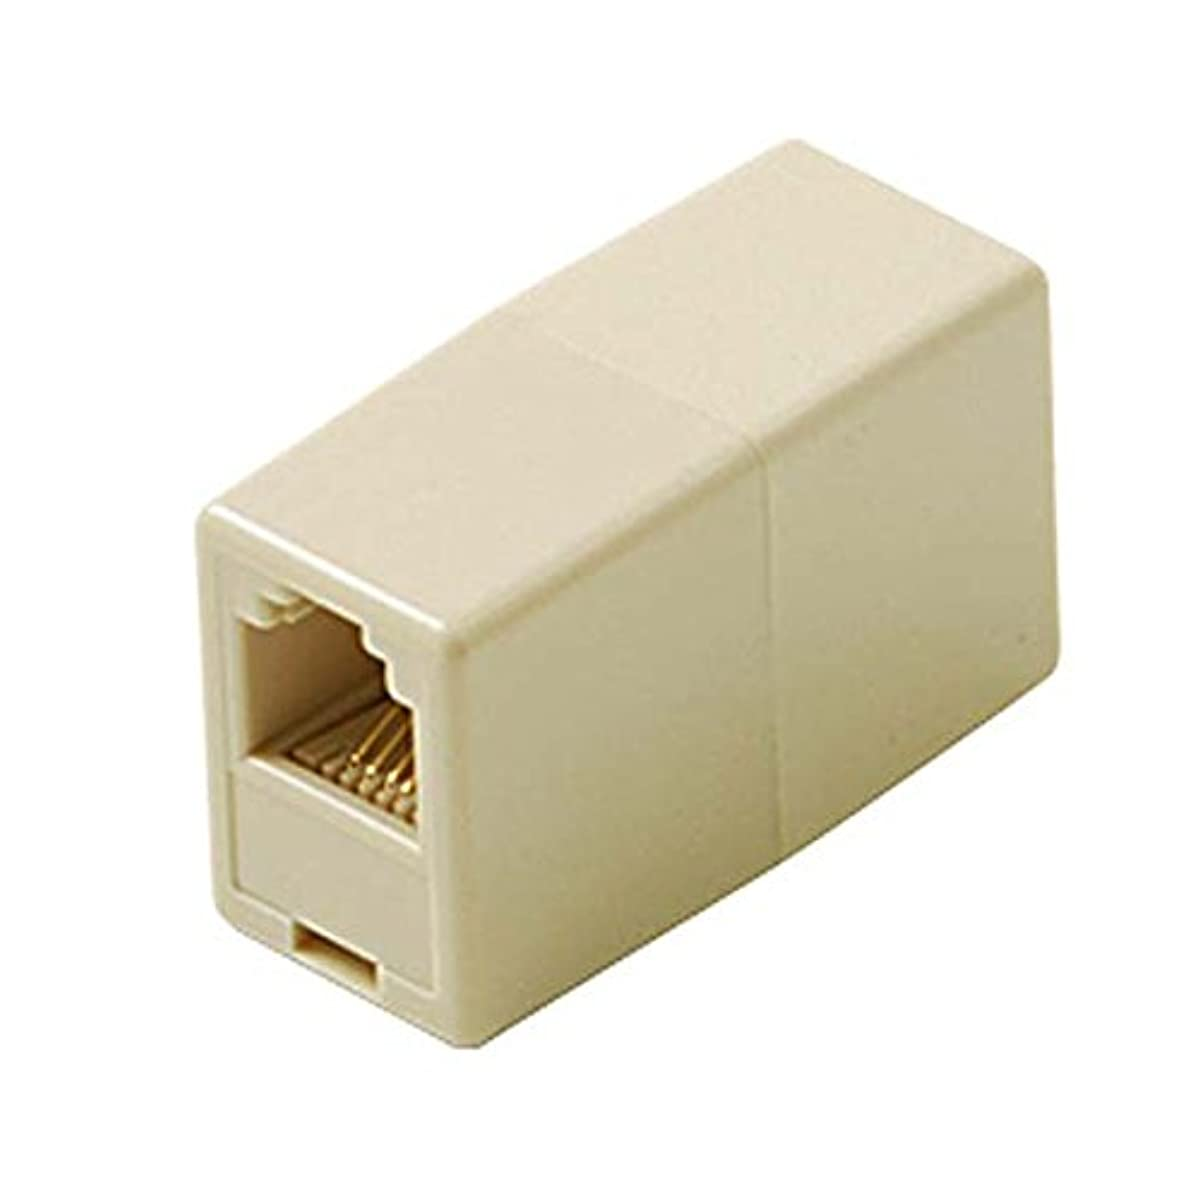 Phone In-Line Cable RJ11 Coupler White Female Modular Telephone Jack Cord Add-On Snap Plug Extension and Splice Connection, Fax Adapter